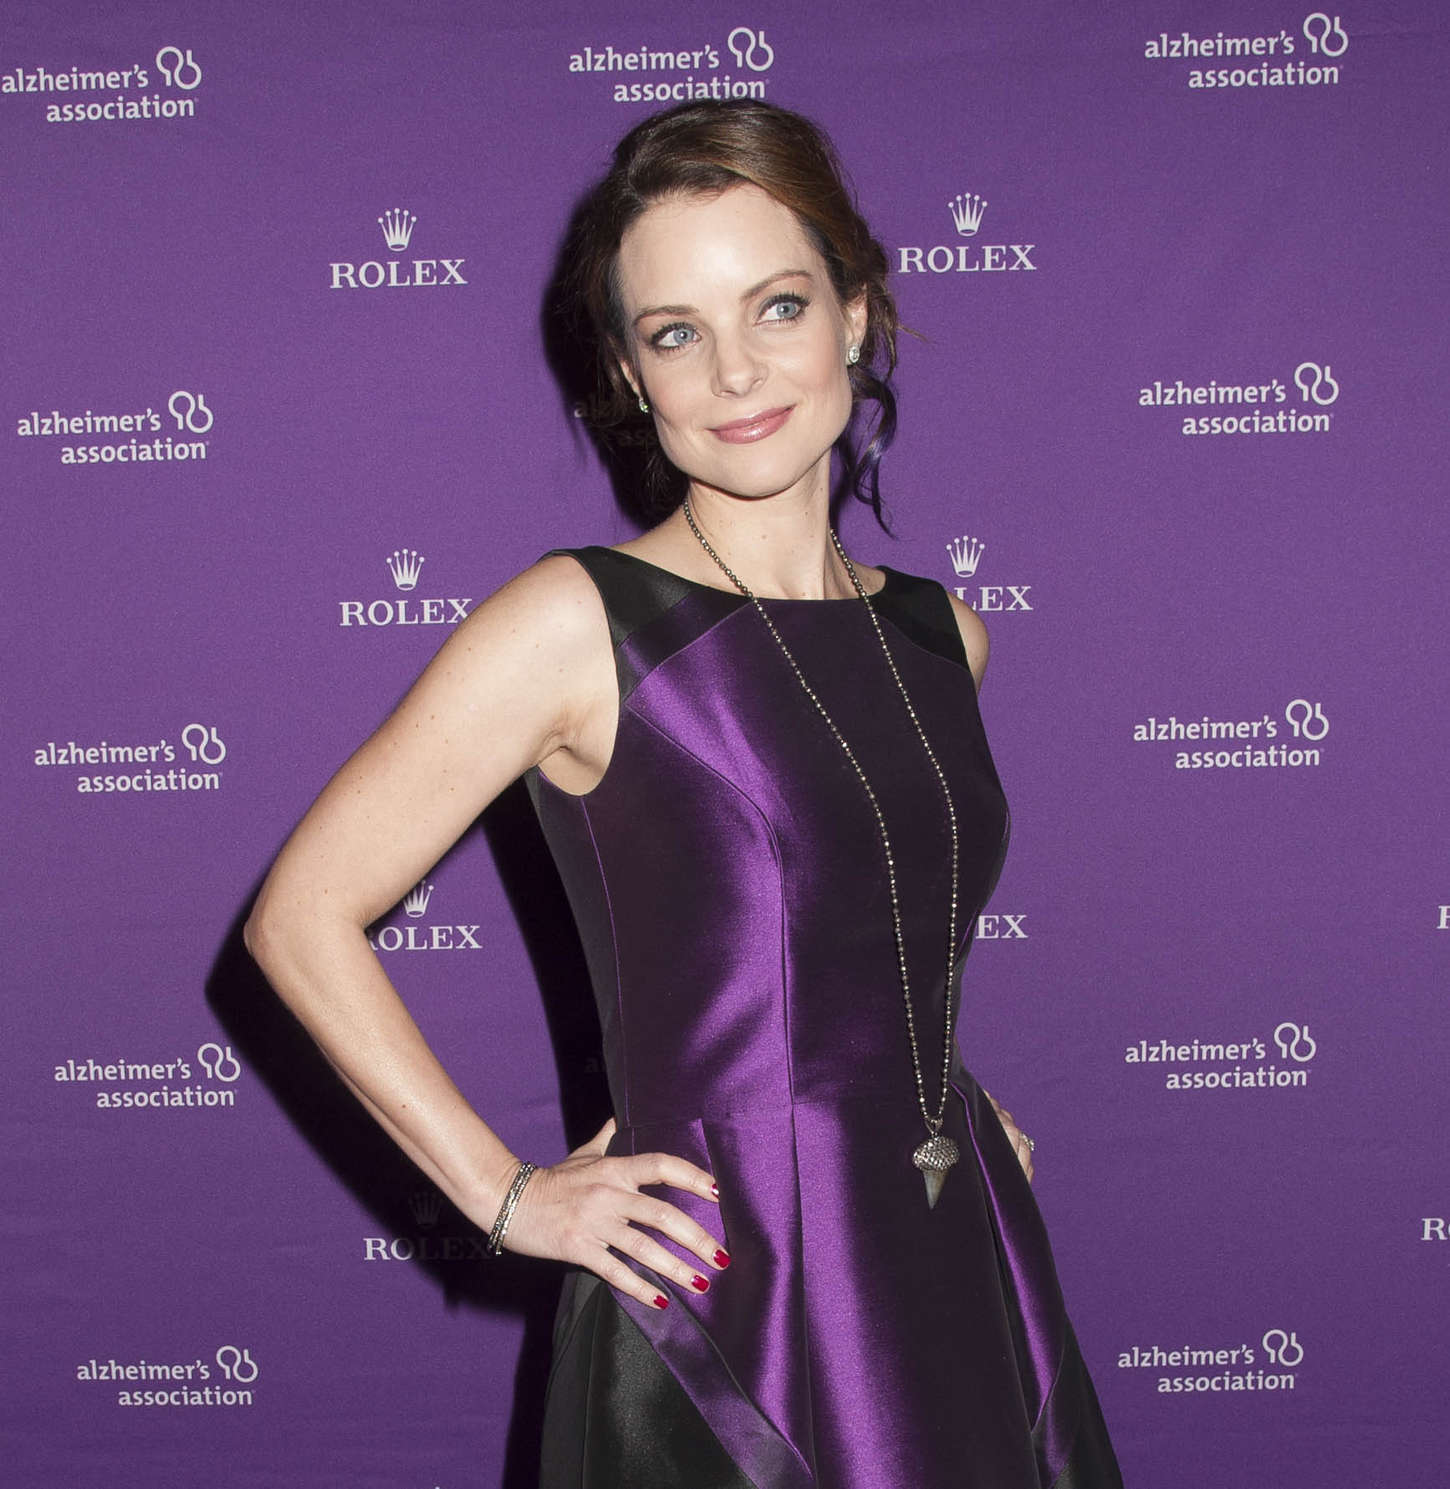 Kimberly Williams-Paisley Alzheimers Association Annual Rita Hayworth Gala in New York